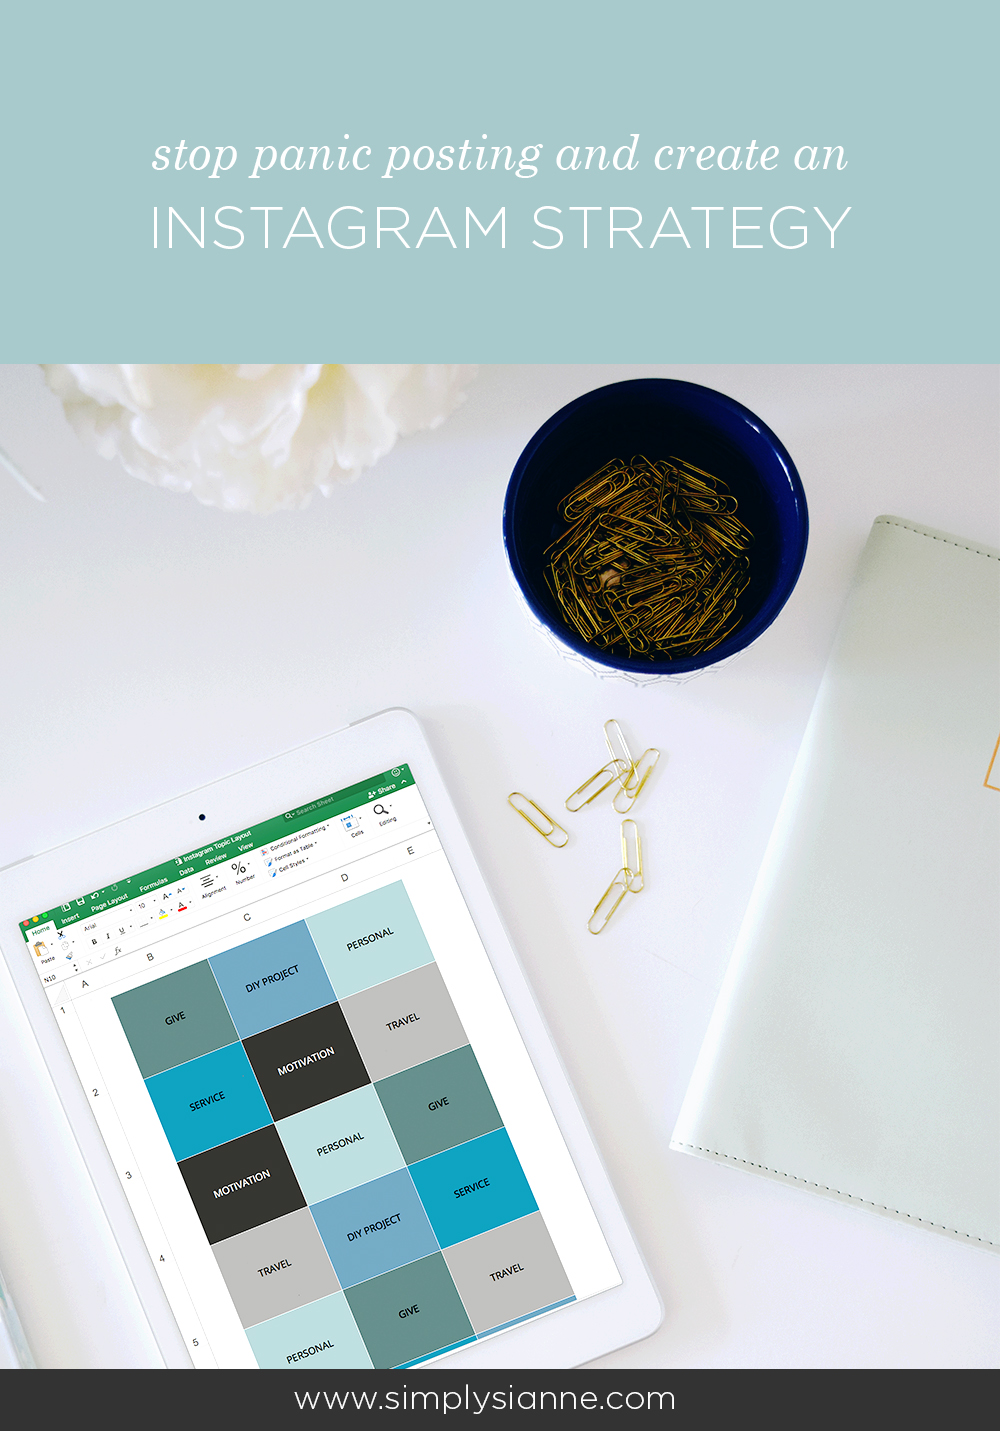 Create an Instagram Strategy and stop panic posting!